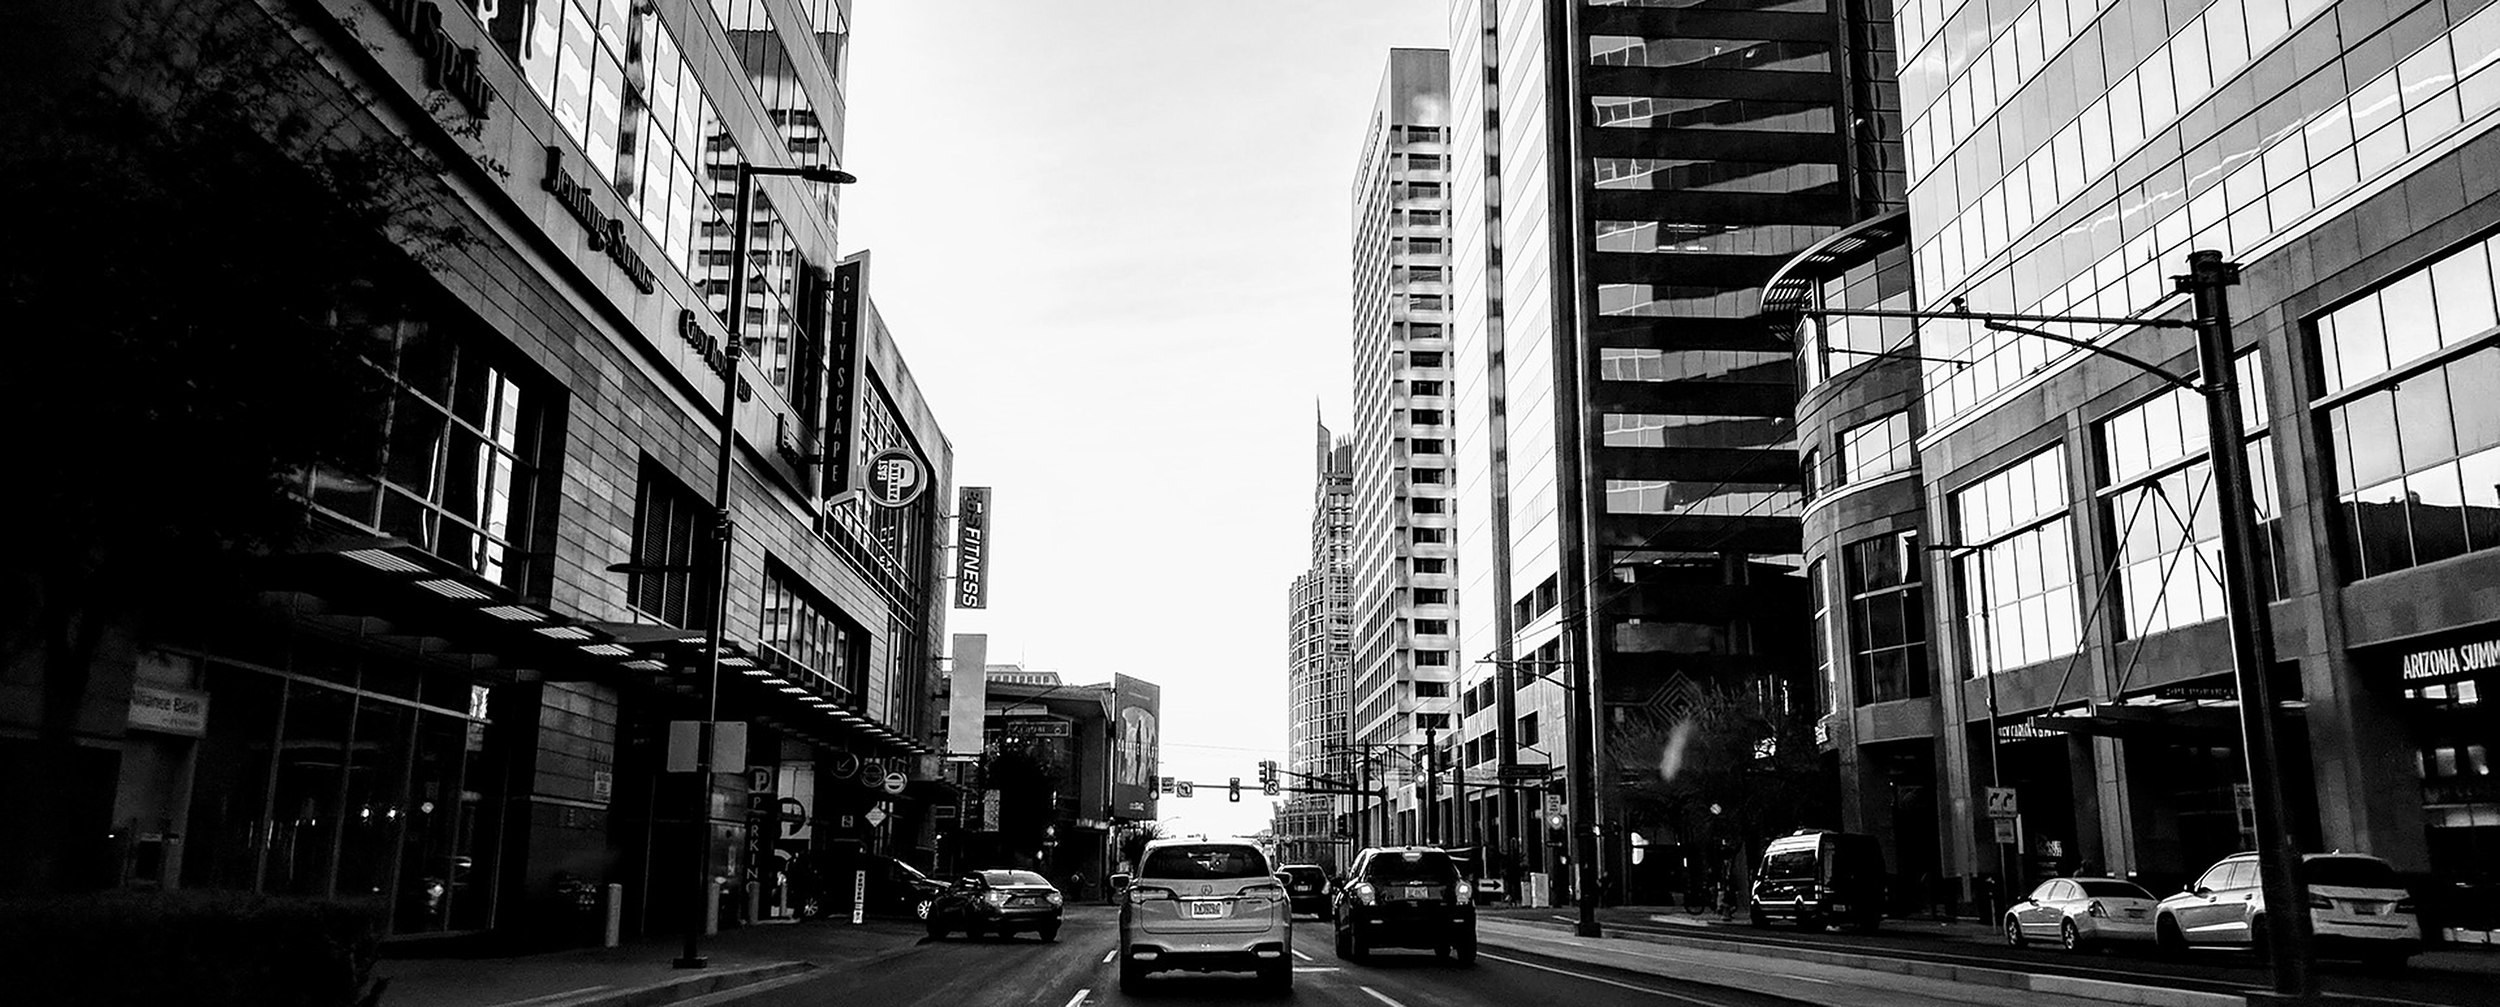 Photo of downtown Phoenix in black and white showing street and buildings